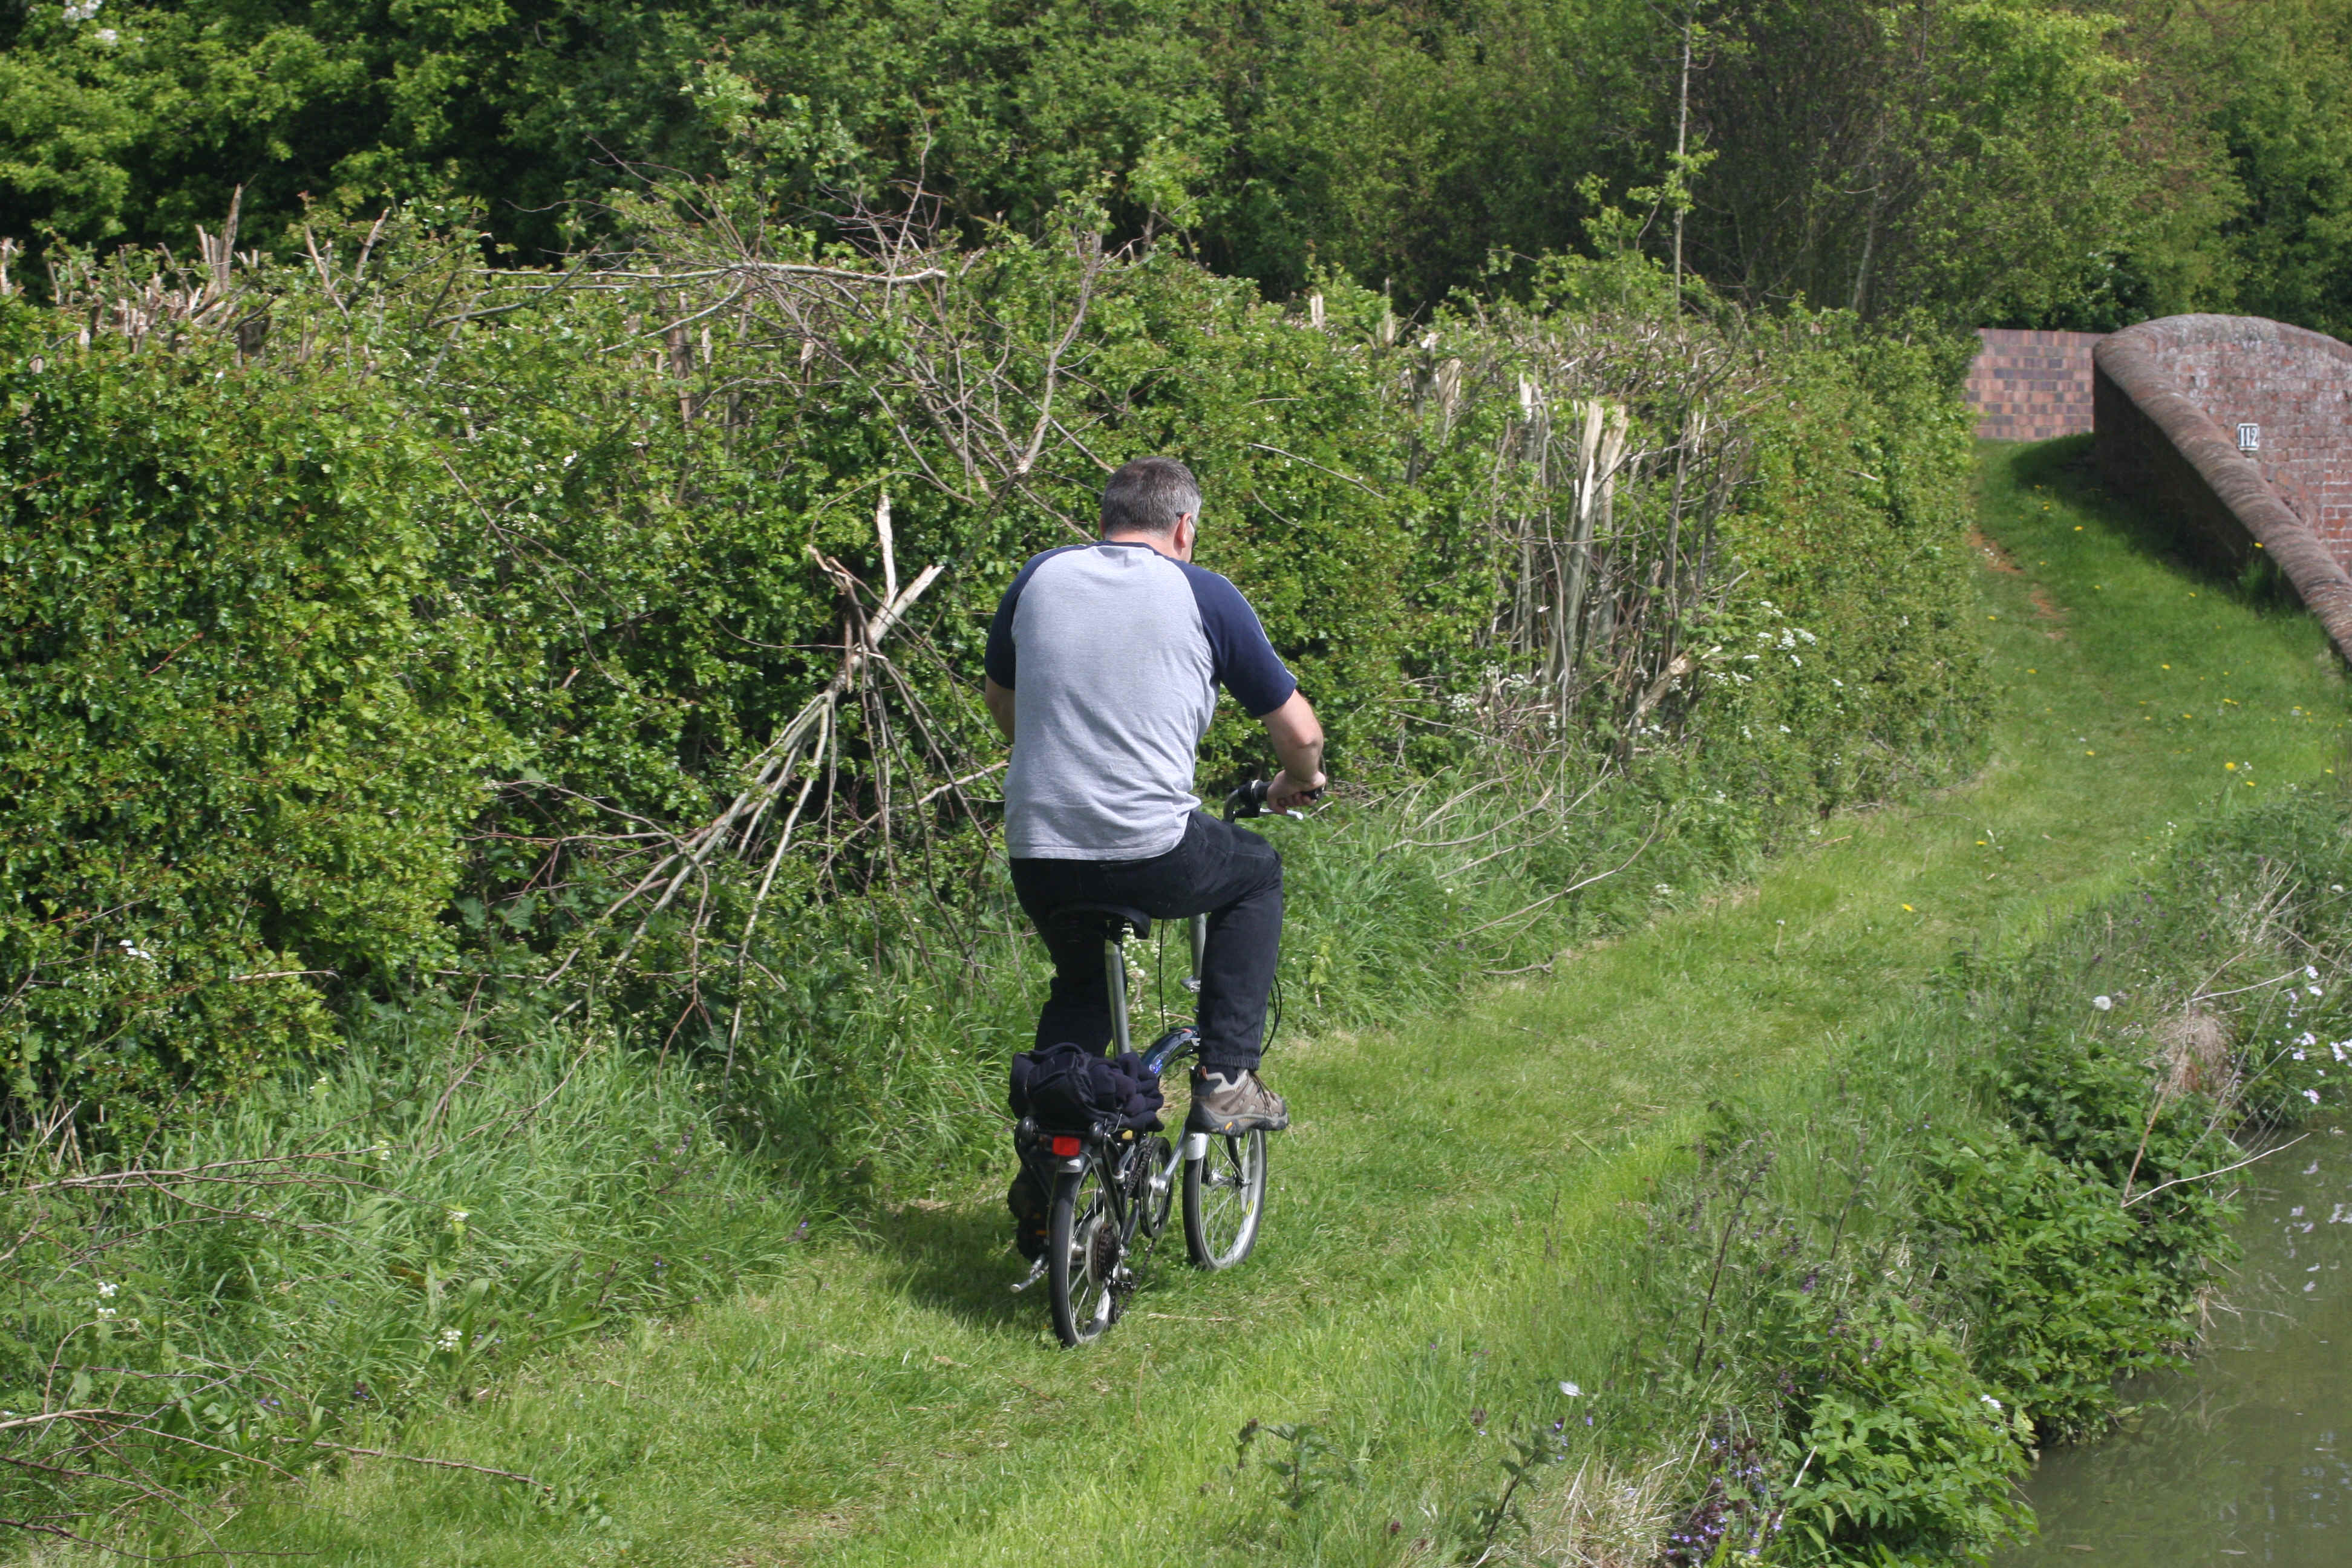 Those little wheels hardly look equal to the rough old towpath - Nick did well!